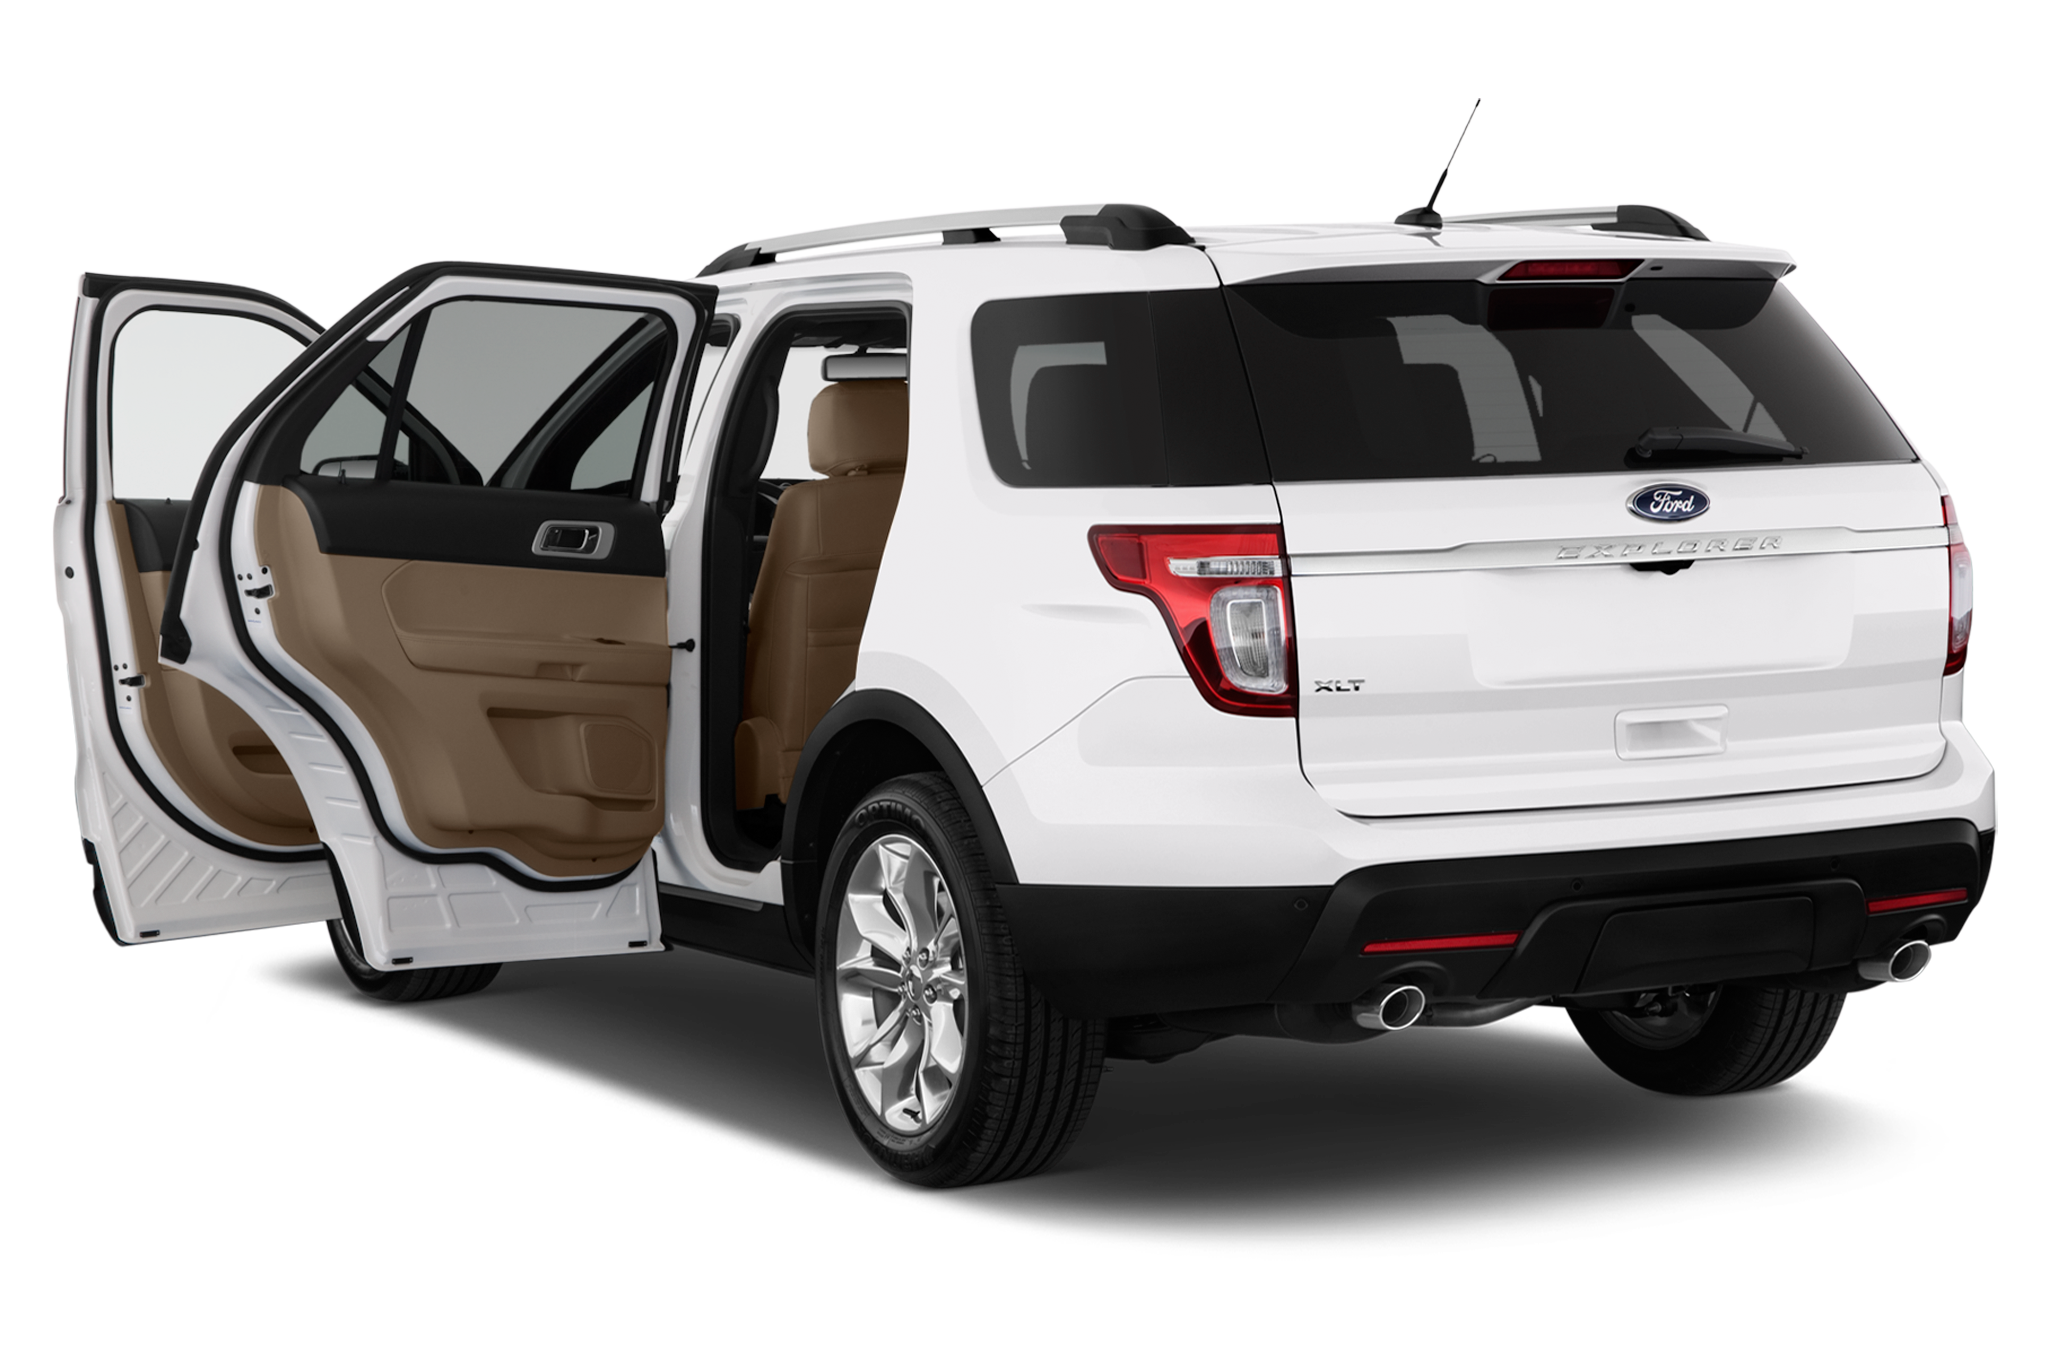 2012 ford explorer xlt suv doors first drive ford explorer and 2012 ford edge ecoboost automobile  at aneh.co